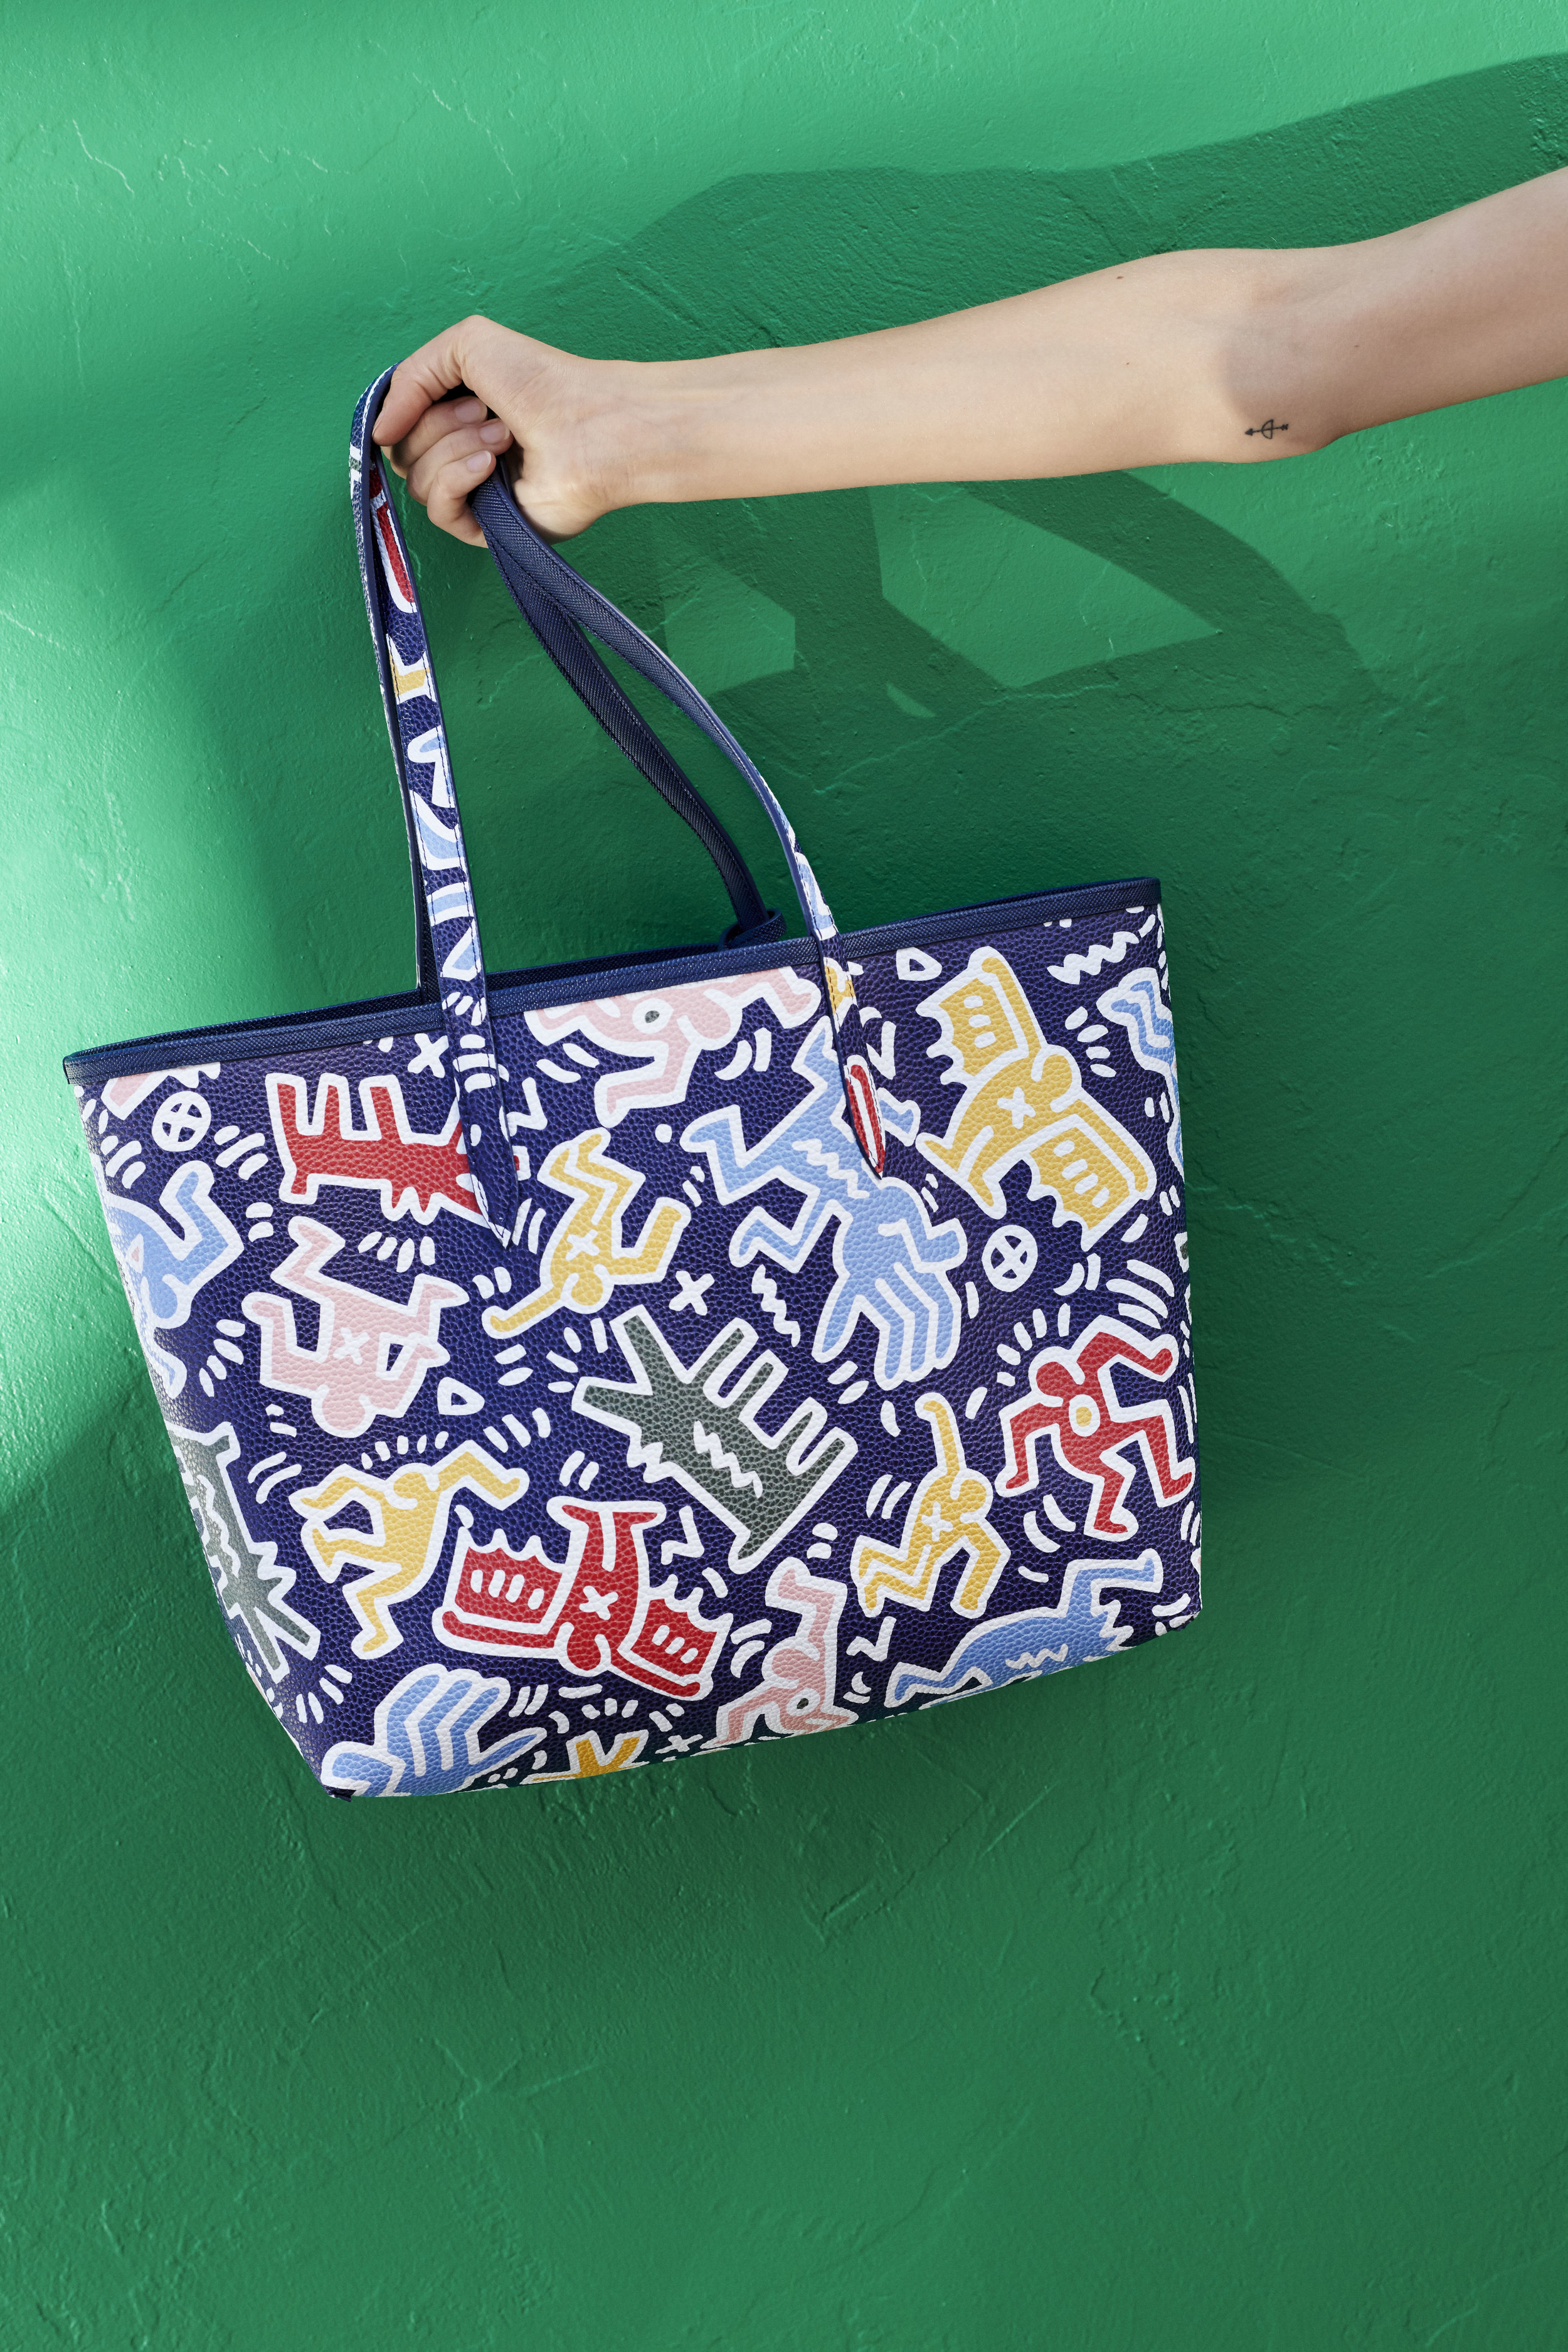 06_LACOSTE_X_KEITH_HARING.jpg